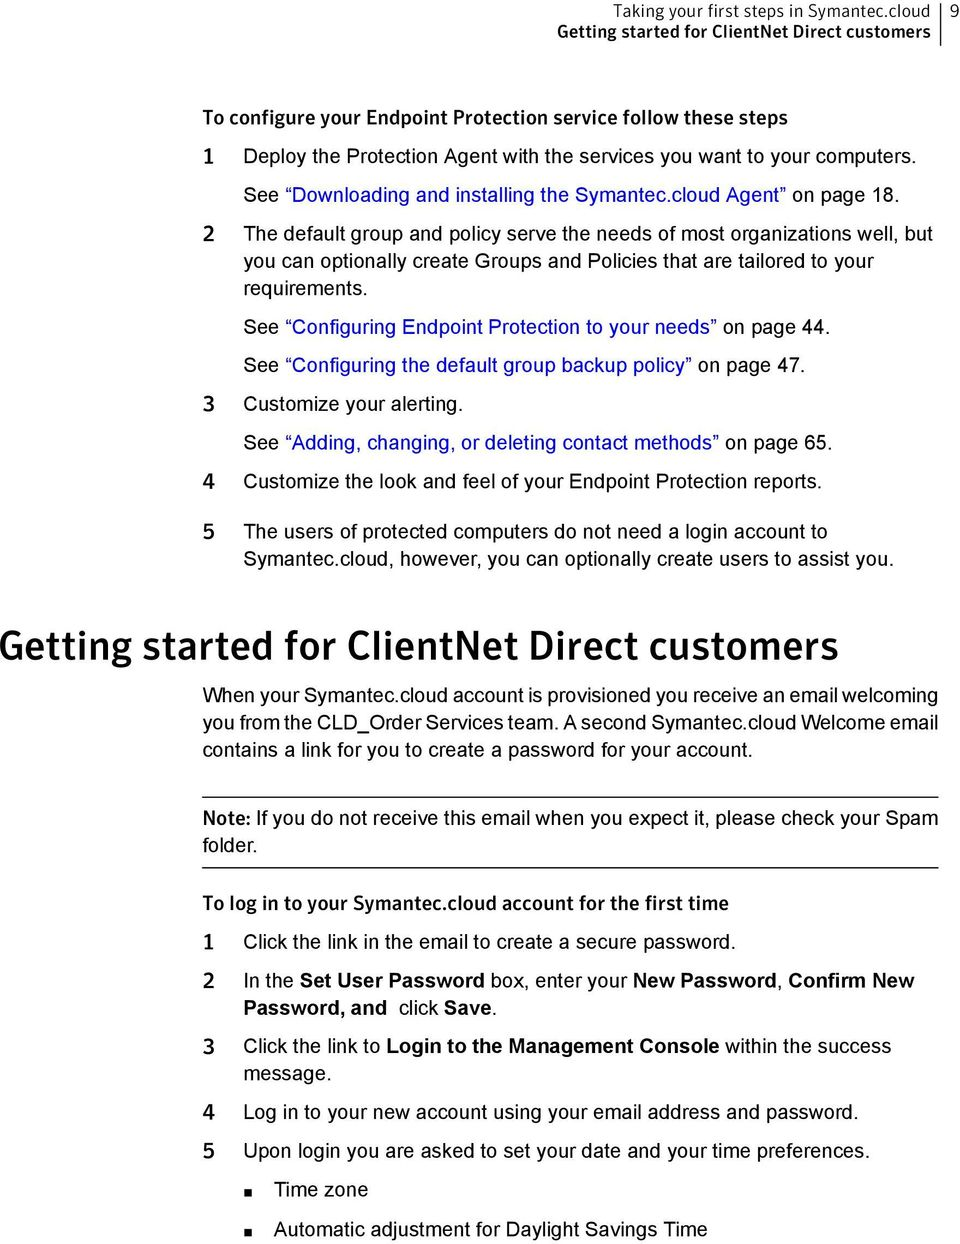 See Downloading and installing the Symantec.cloud Agent on page 18.